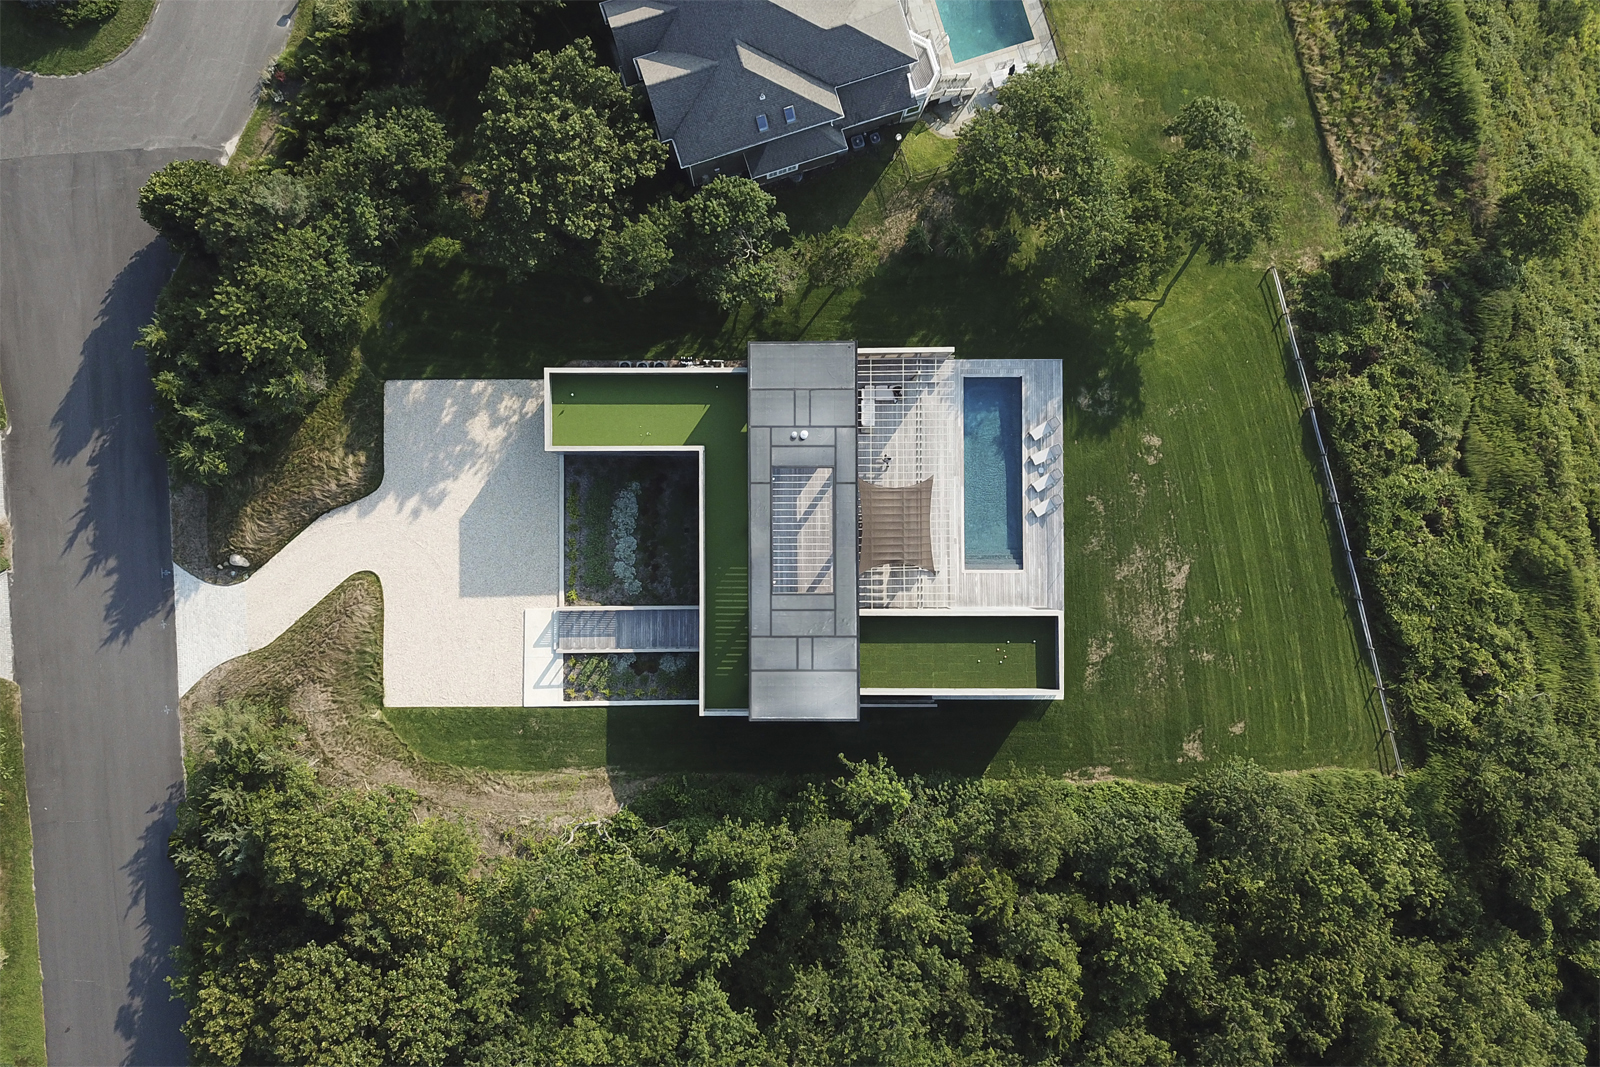 25-res4-resolution-4-architecture-modern-modular-house-prefab-home-north-fork-bluff-house-exterior-top-view-drone-shot.jpg